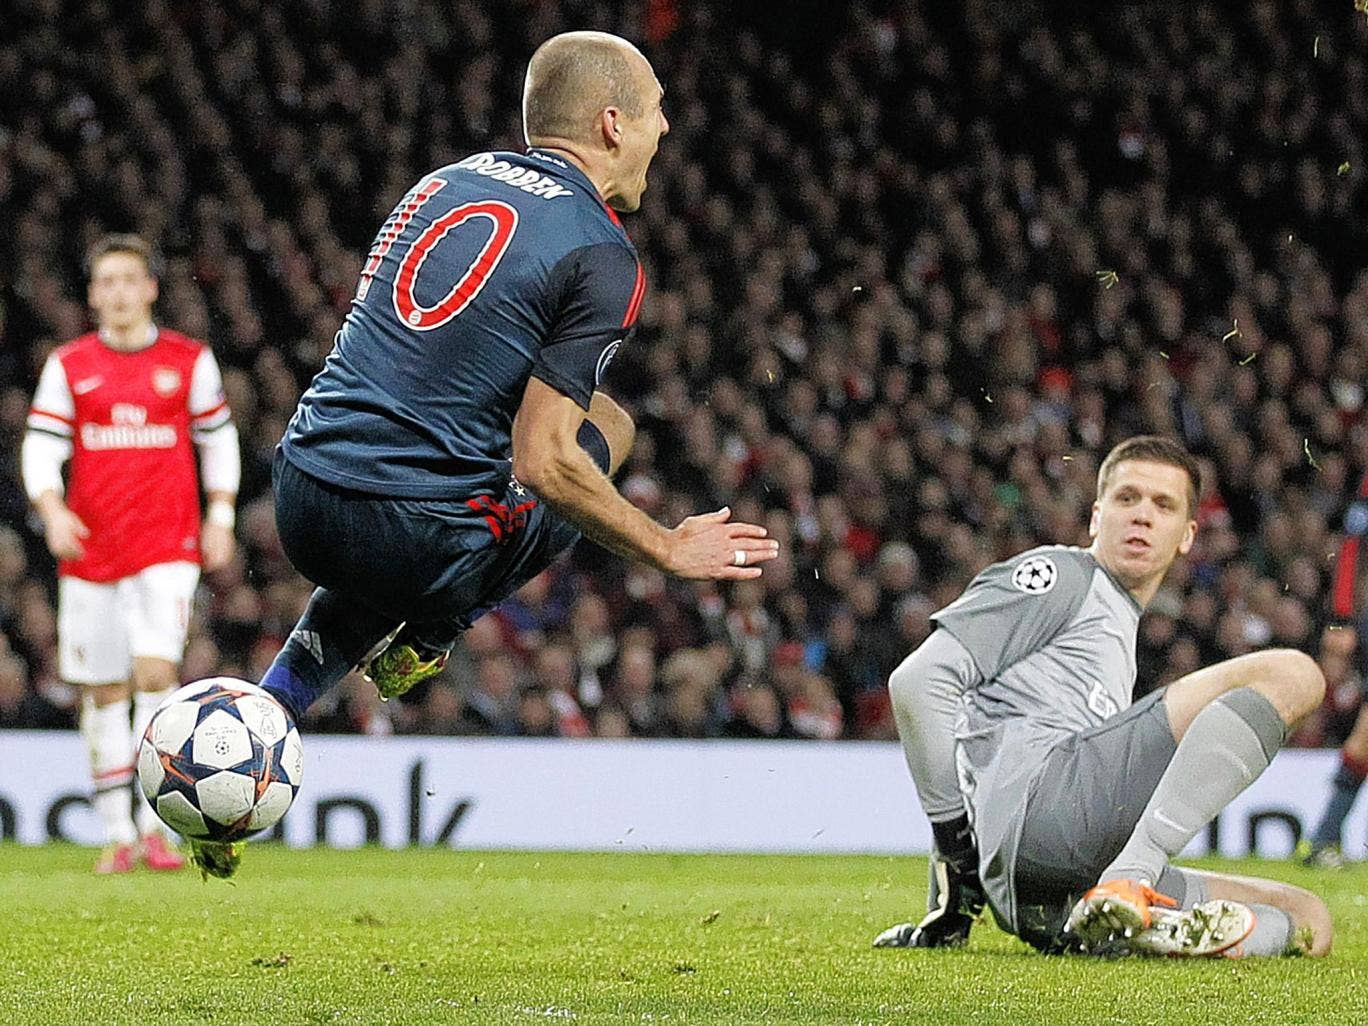 Arjen Robben is brought down by Wojciech Szczesny during Bayern Munich's 2-0 victory over Arsenal